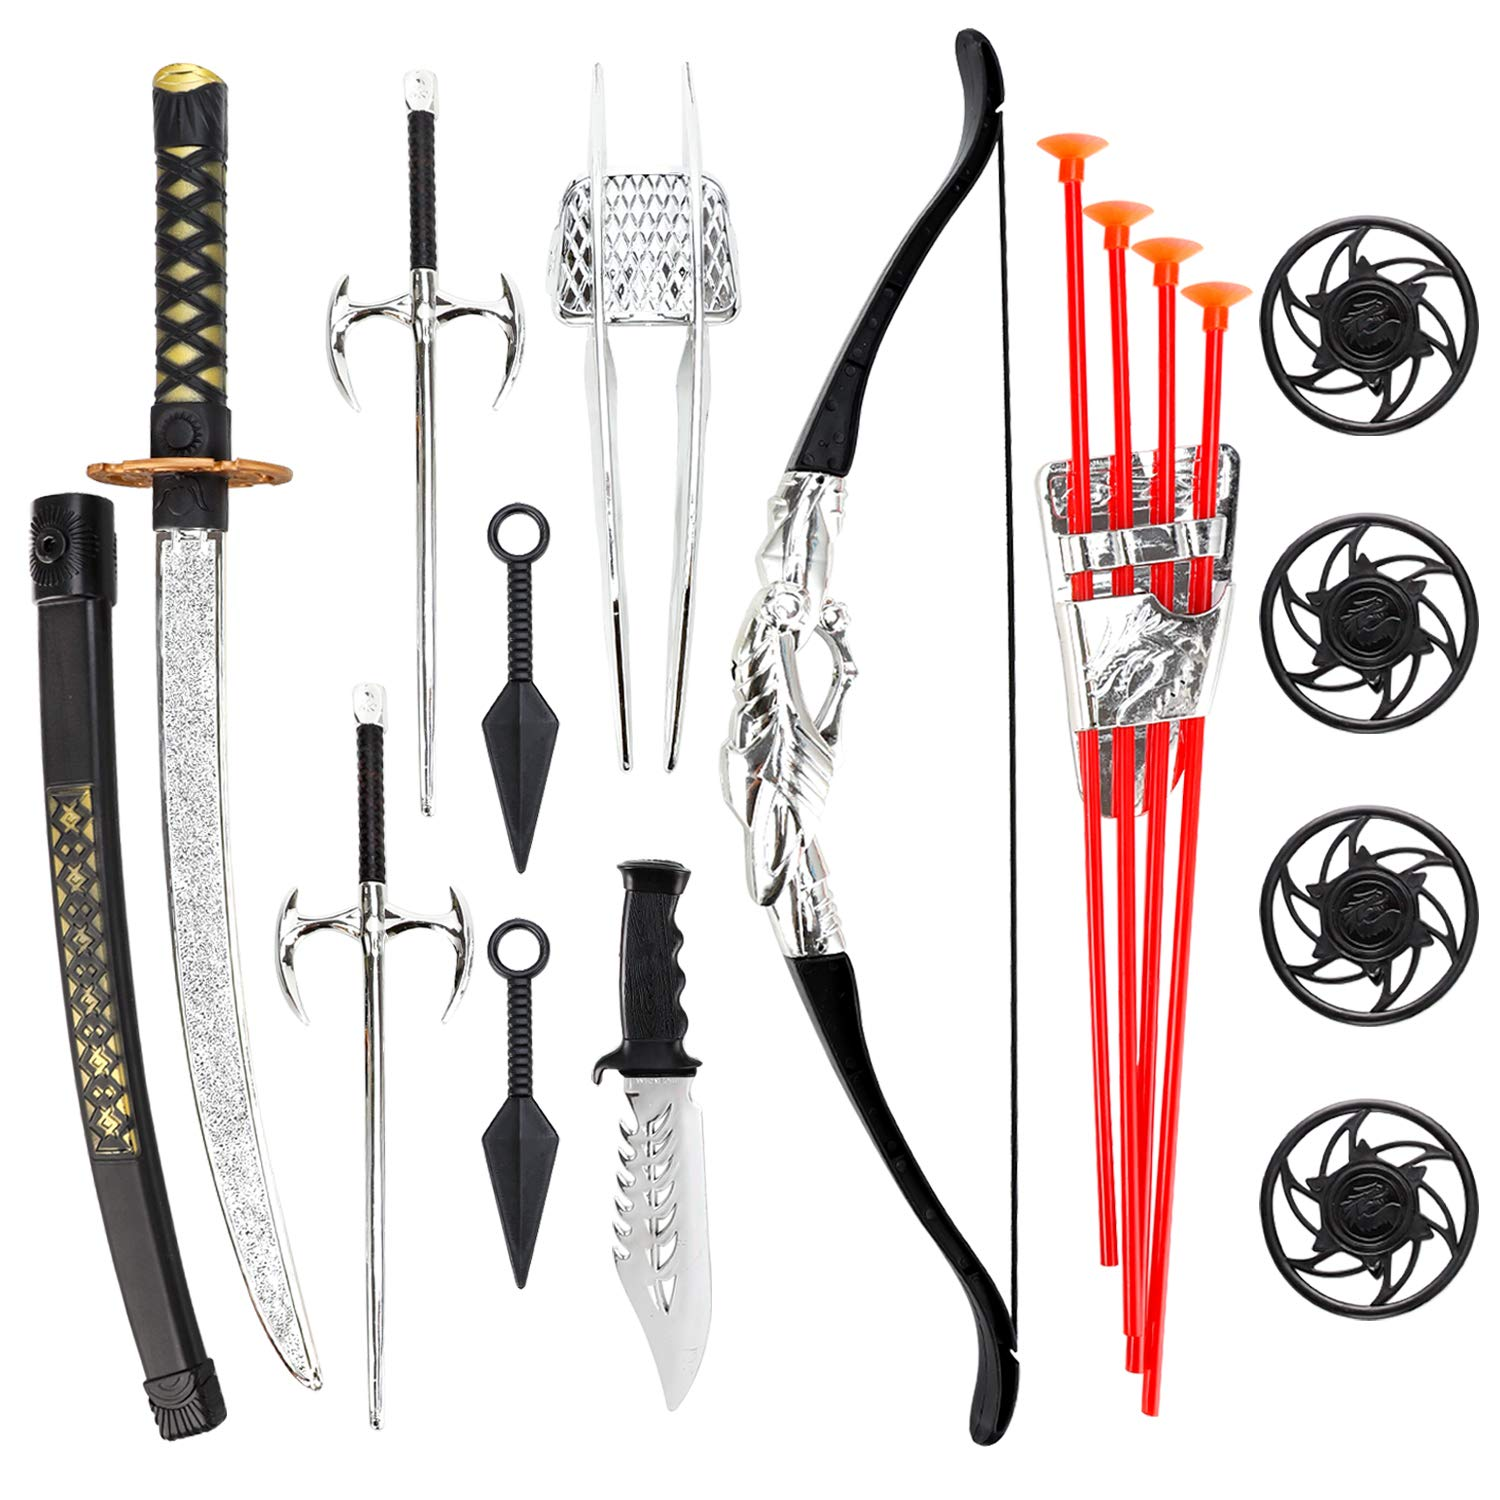 Ninja Warrior Bow and Arrow Archery Set - Ninja Gift Ideas